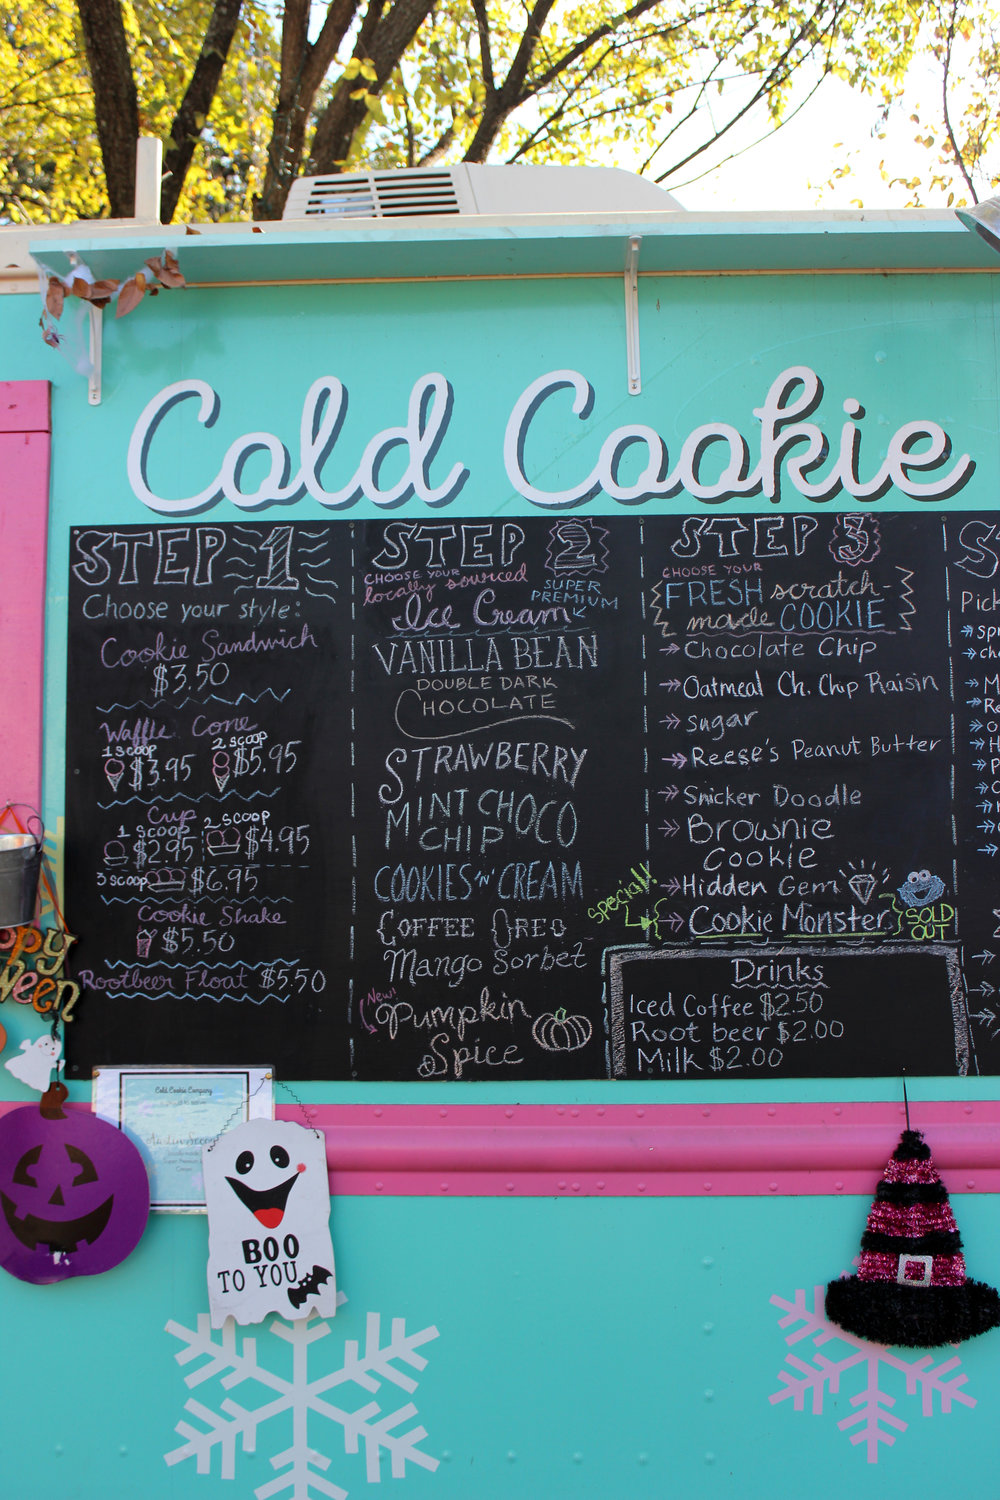 Cold Cookie Co. is located in West Campus on 26th Street.